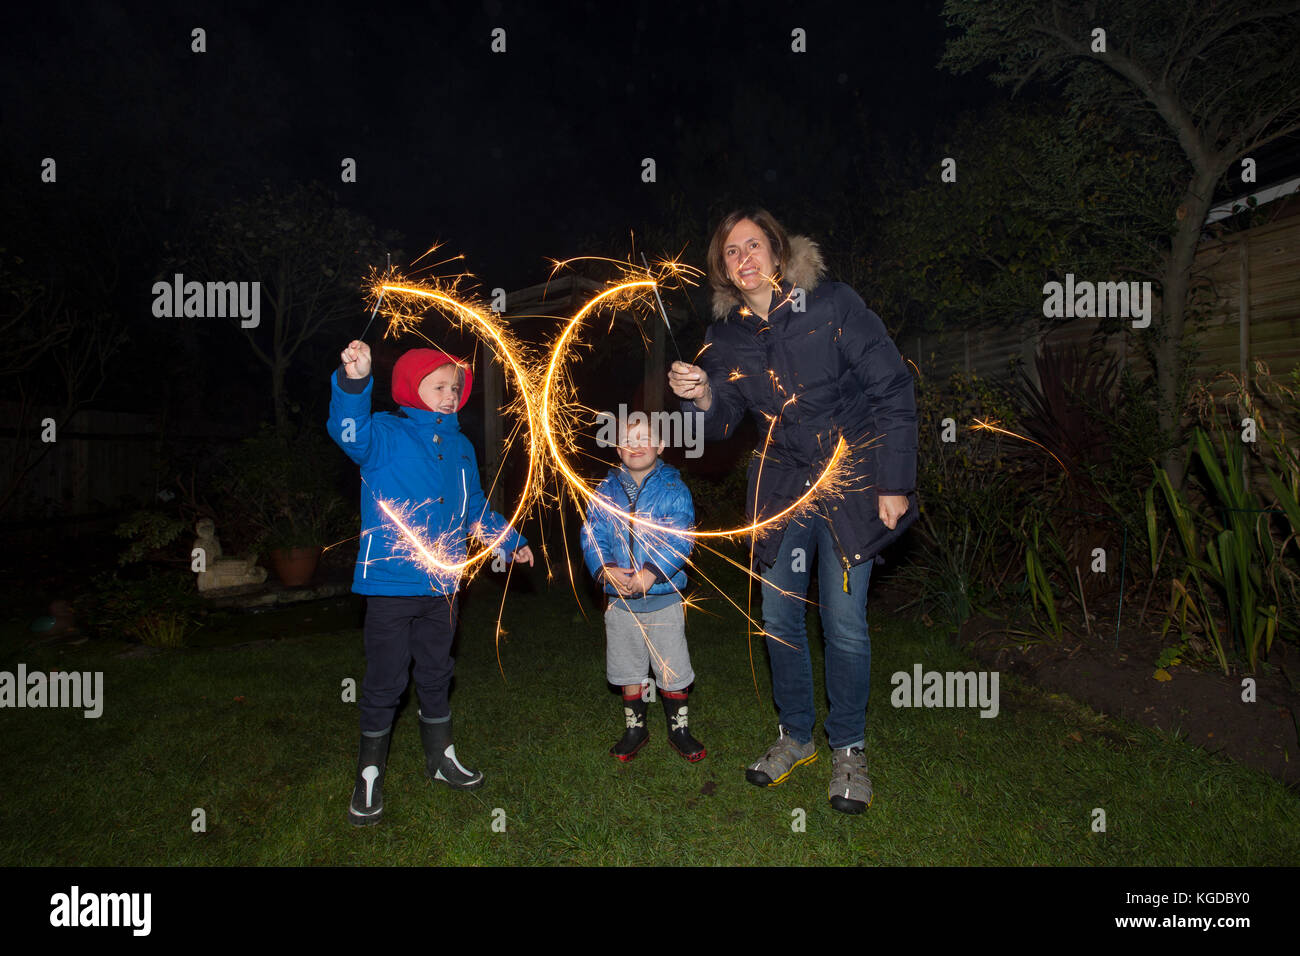 Family with hand held sparkler fireworks in a residential garden on Bonfire Night marking the anniversary of the Stock Photo